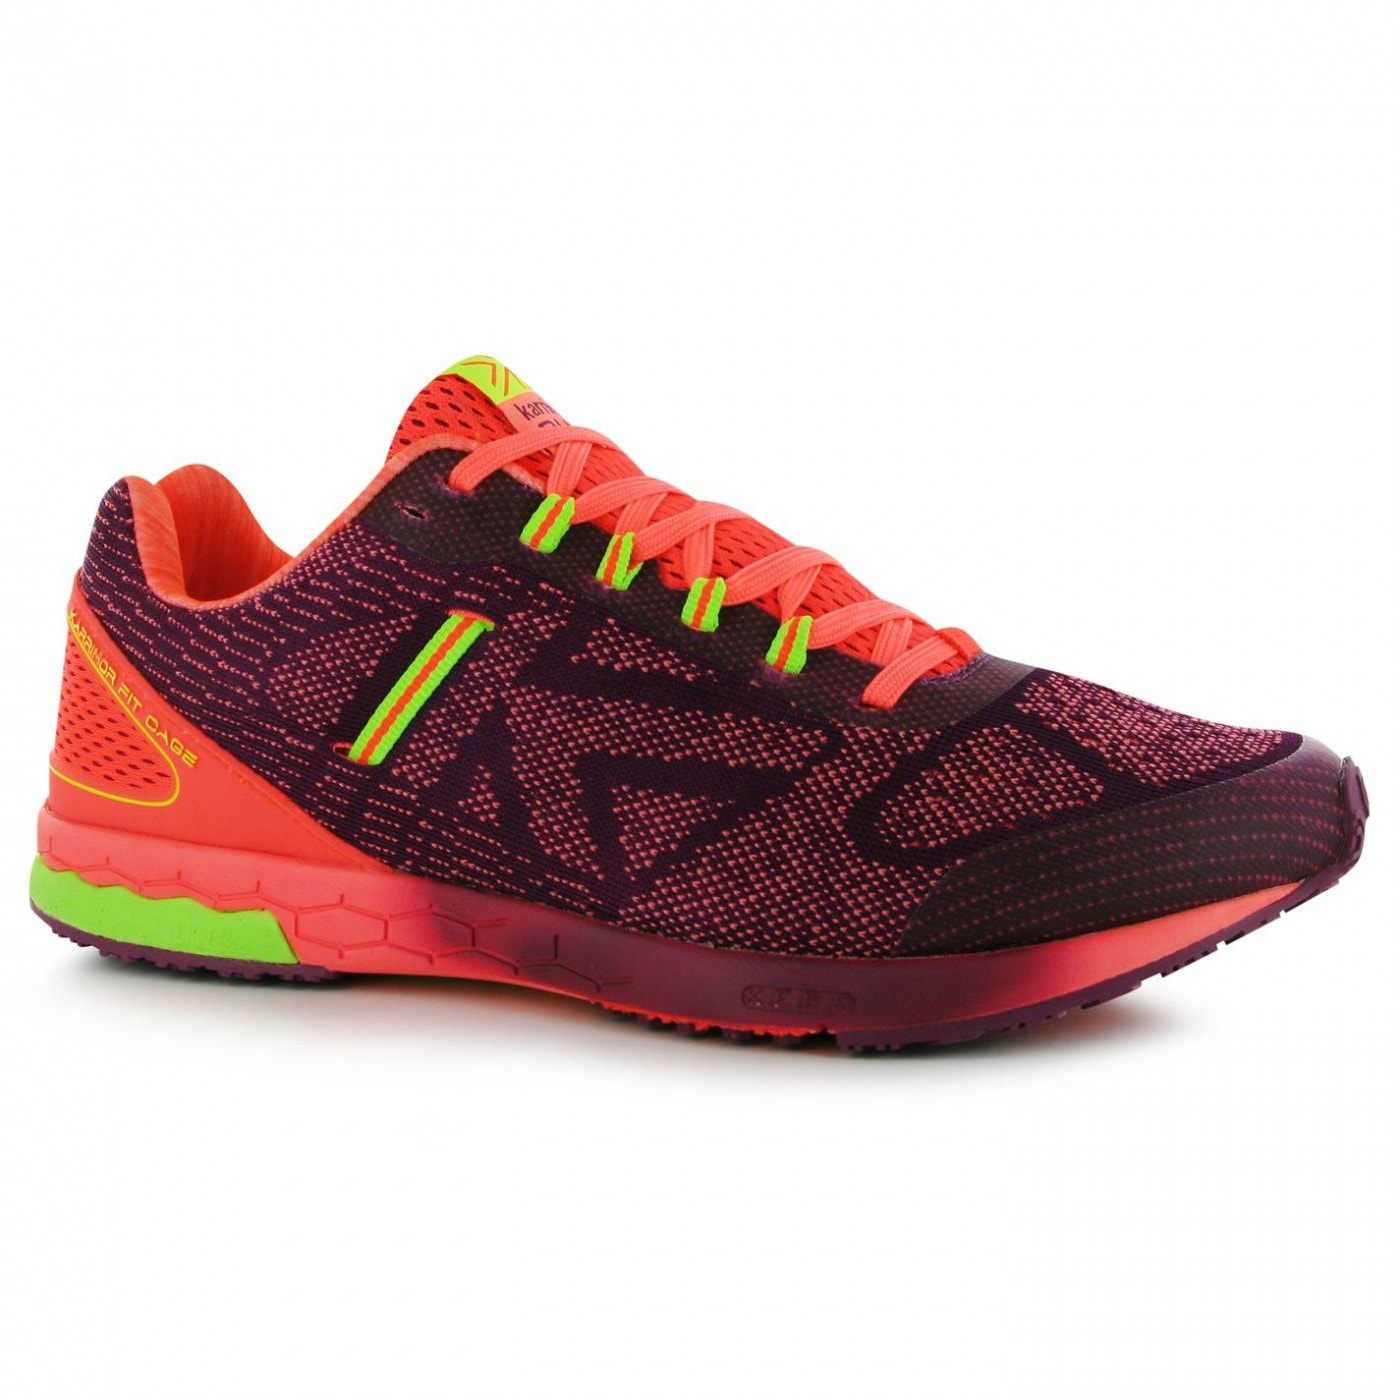 premium selection e775c b5bef Karrimor Excel Lite Running Shoes Ladies - FACTCOOL